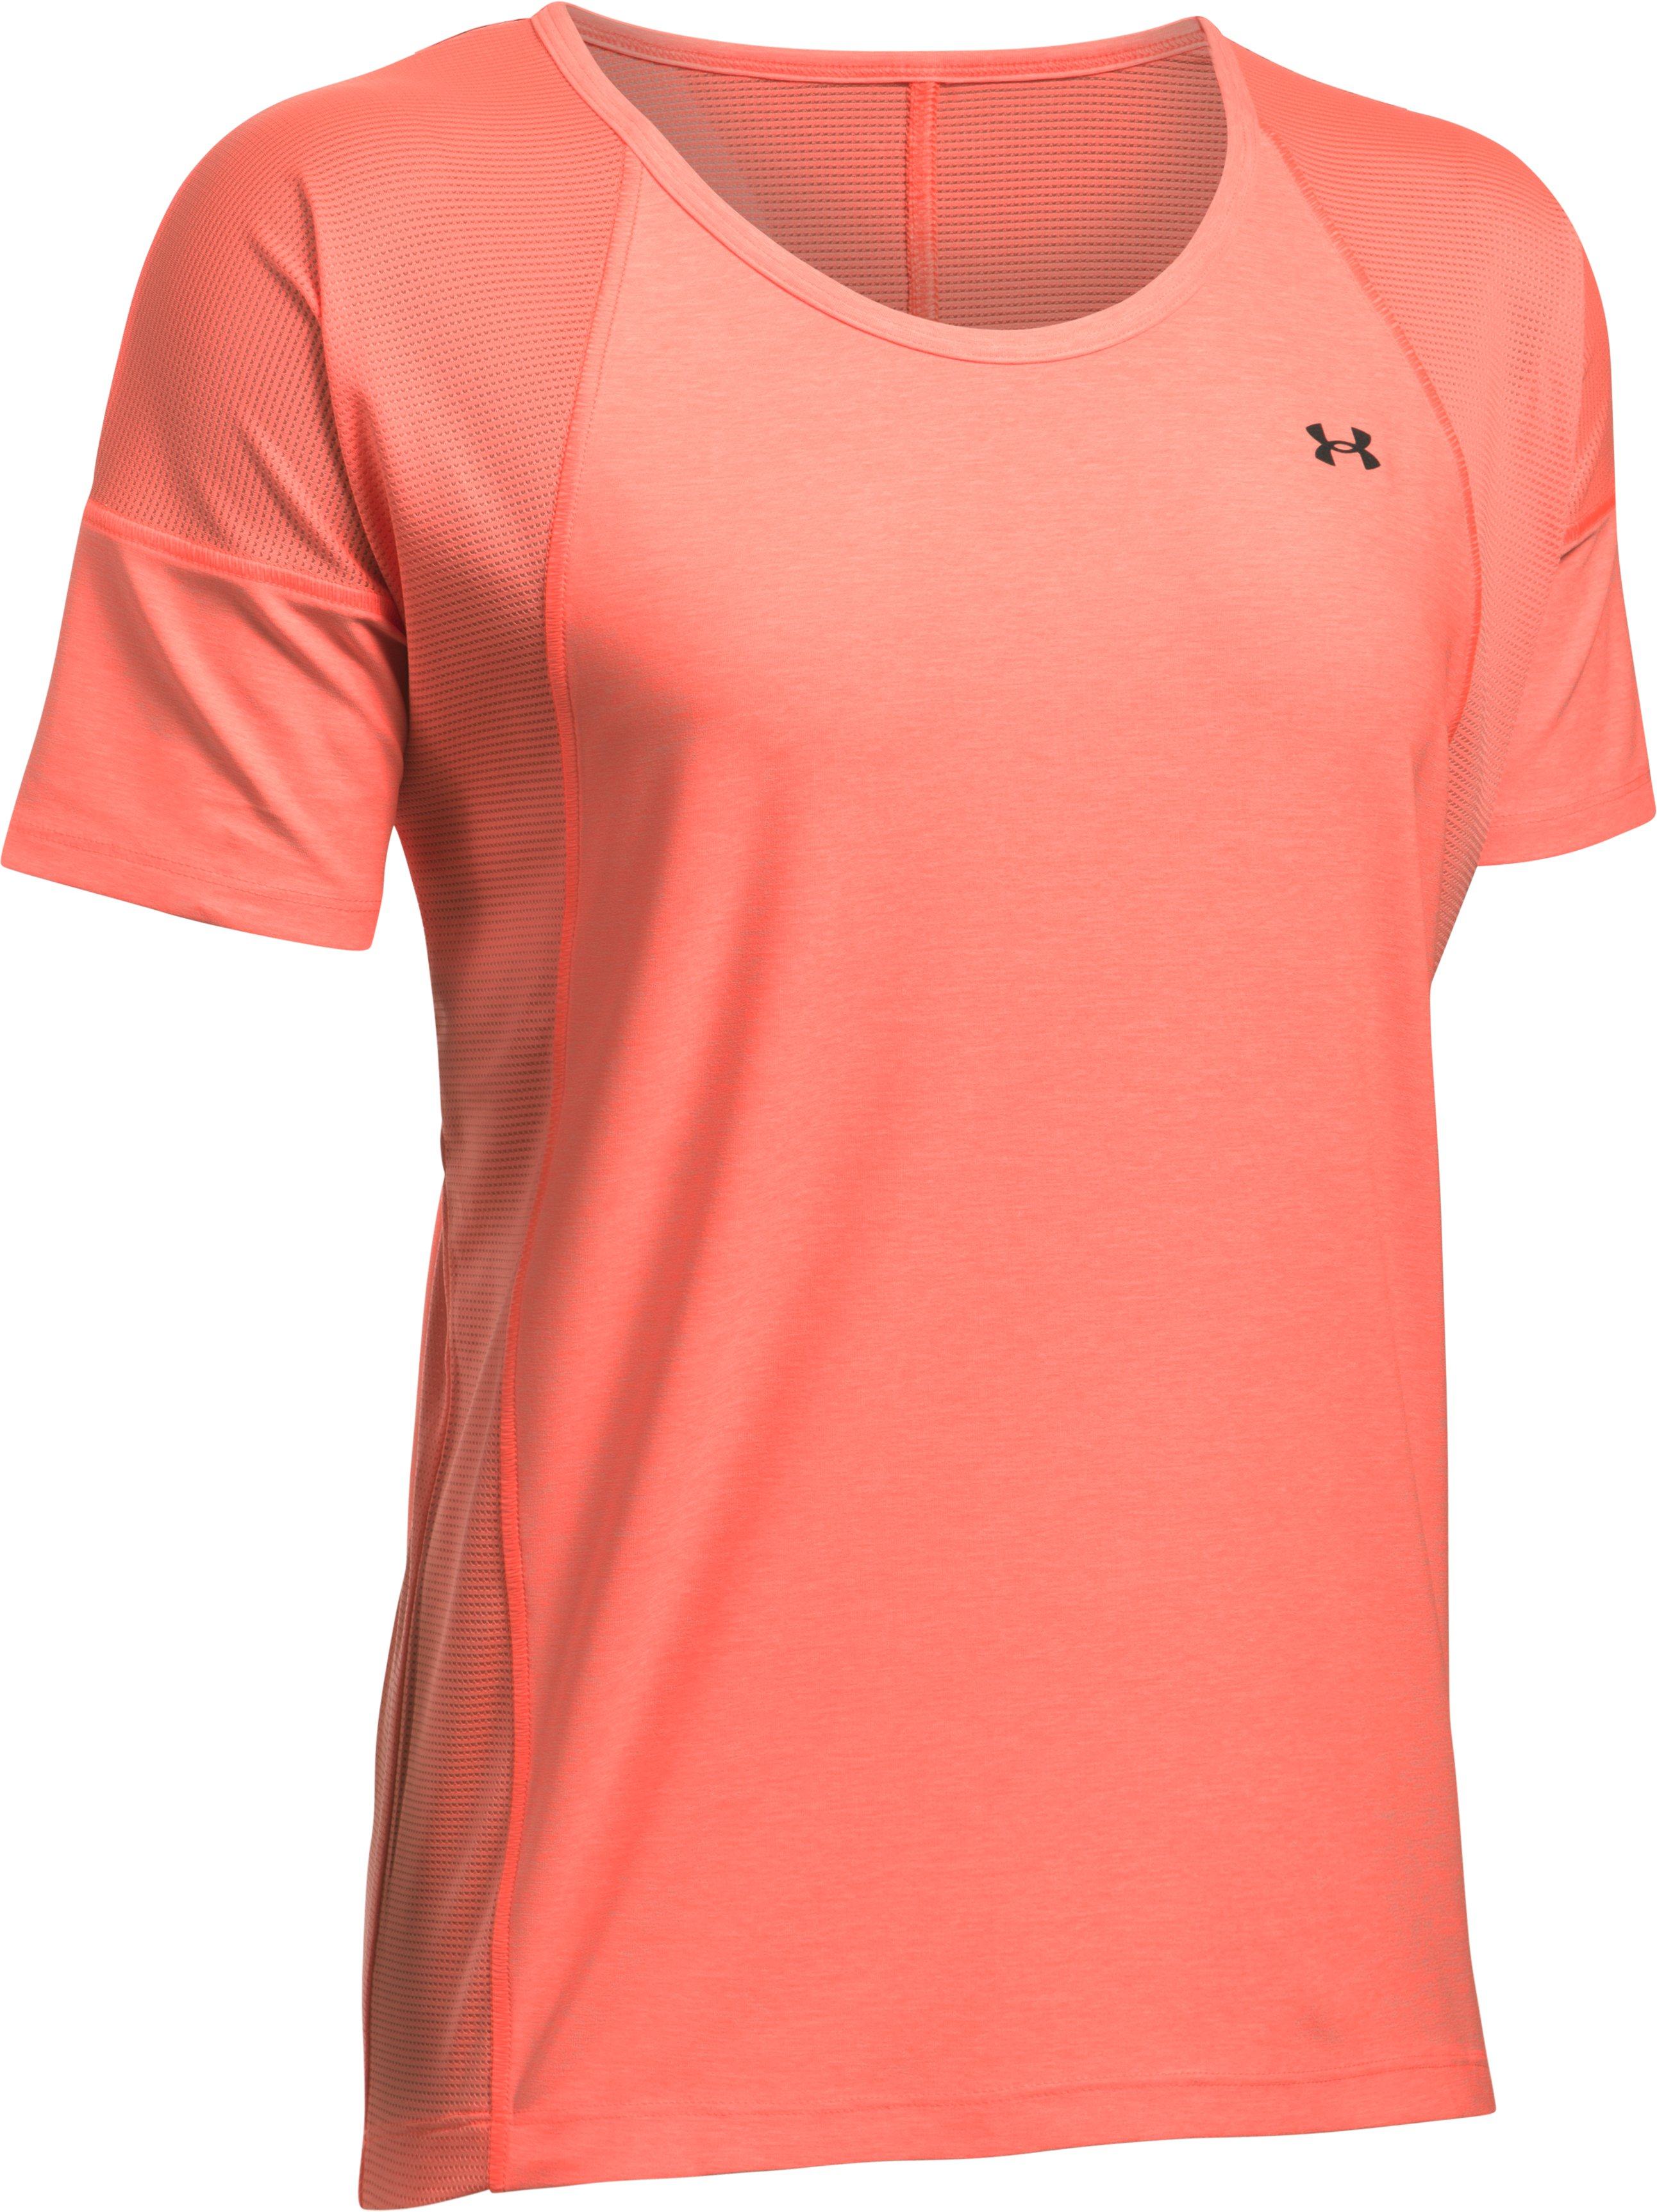 Women's UA Got Game Twist Short Sleeve, LONDON ORANGE,